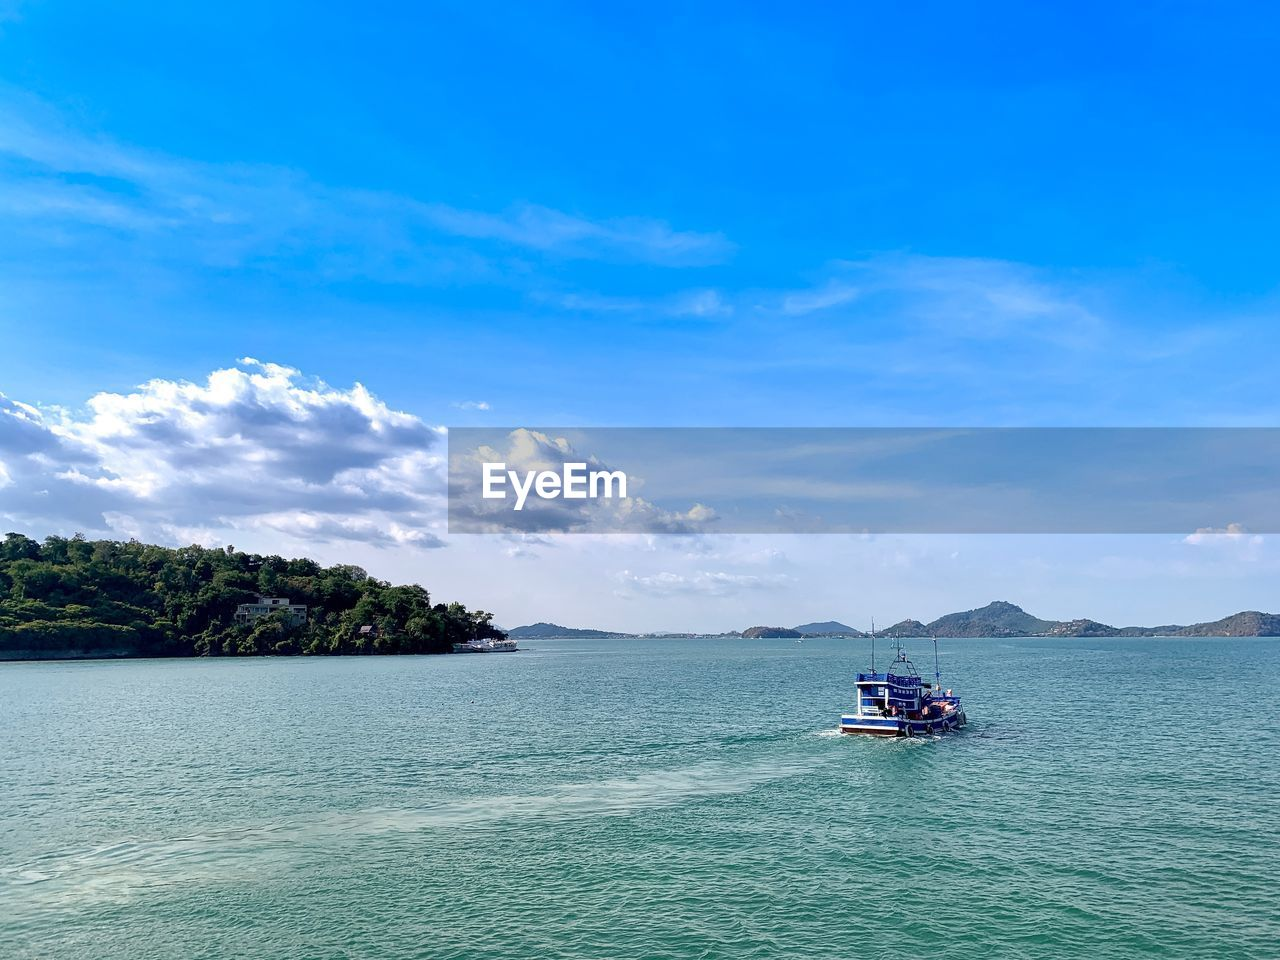 water, nautical vessel, sky, transportation, mode of transportation, cloud - sky, sea, scenics - nature, beauty in nature, waterfront, tranquility, tranquil scene, nature, day, travel, no people, blue, sailing, idyllic, outdoors, passenger craft